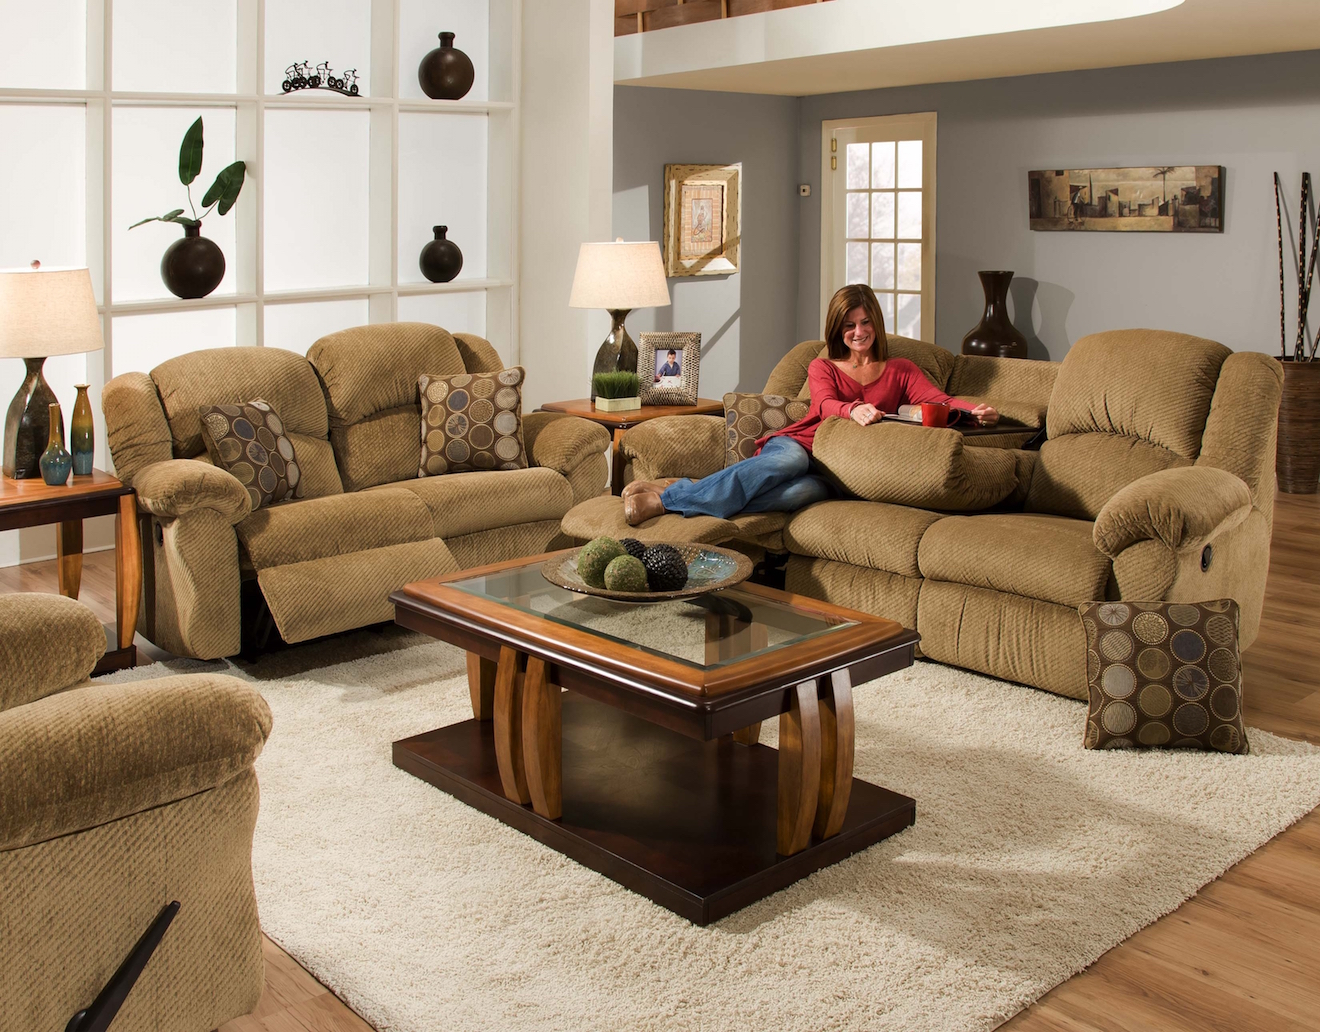 Avery 691 reclining sofa sofas and sectionals avery 691 reclining sofa geotapseo Gallery